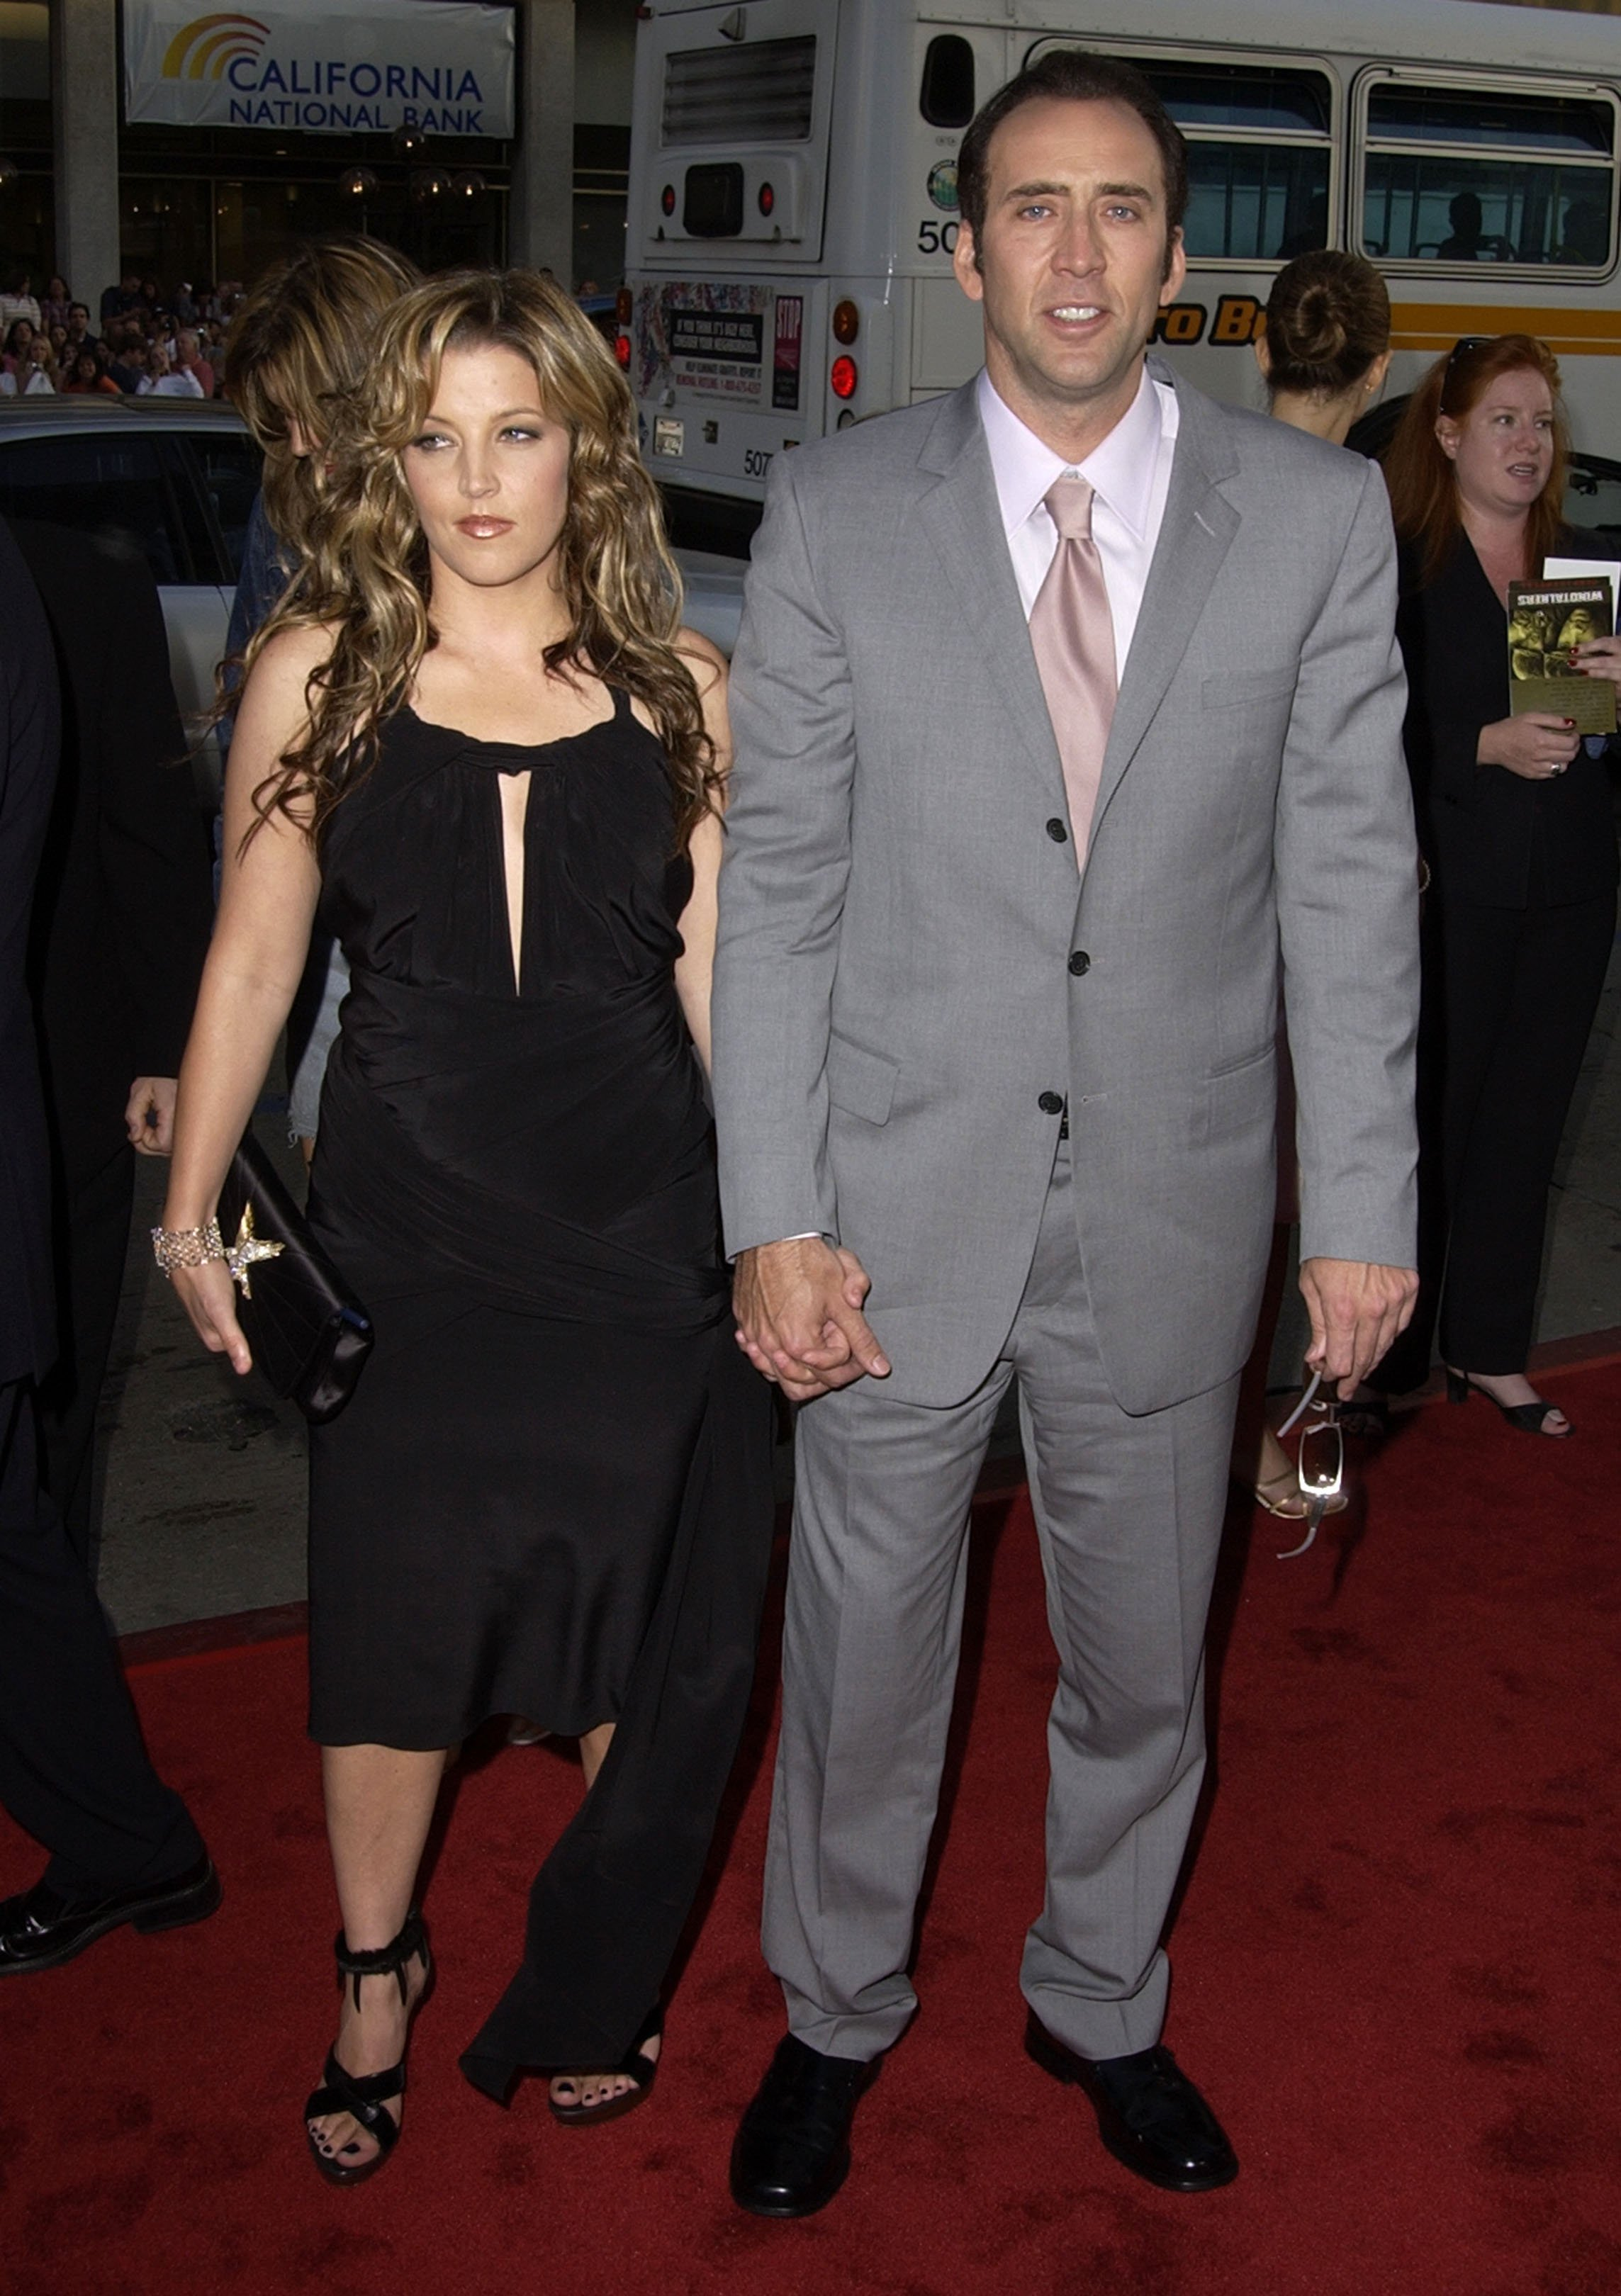 Lisa Marie Presley and Nicolas Cage. I Image: Getty Images.